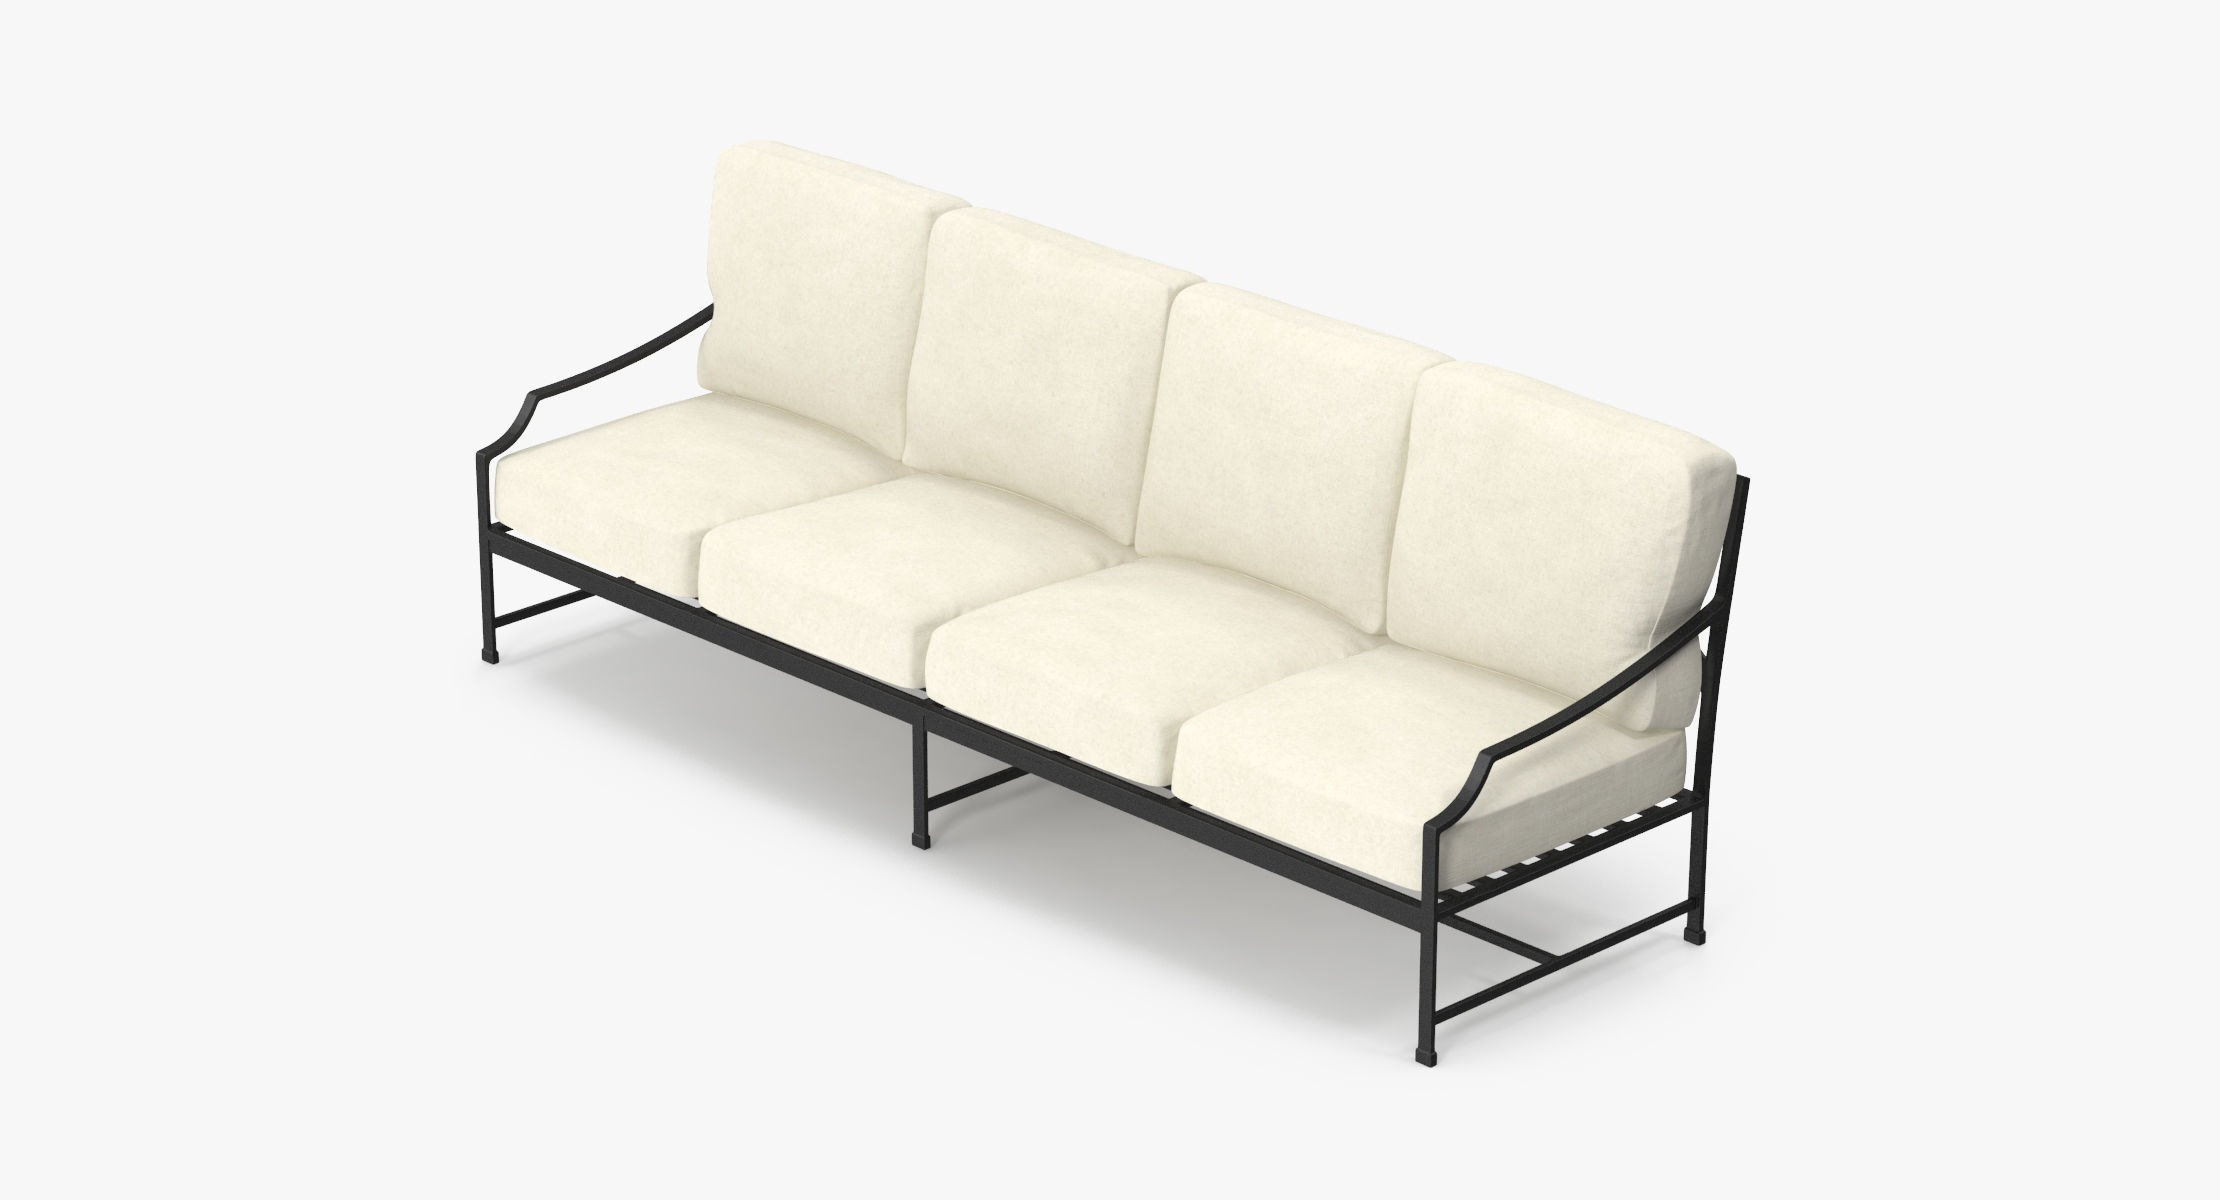 Patio Couch 02 - reel 1